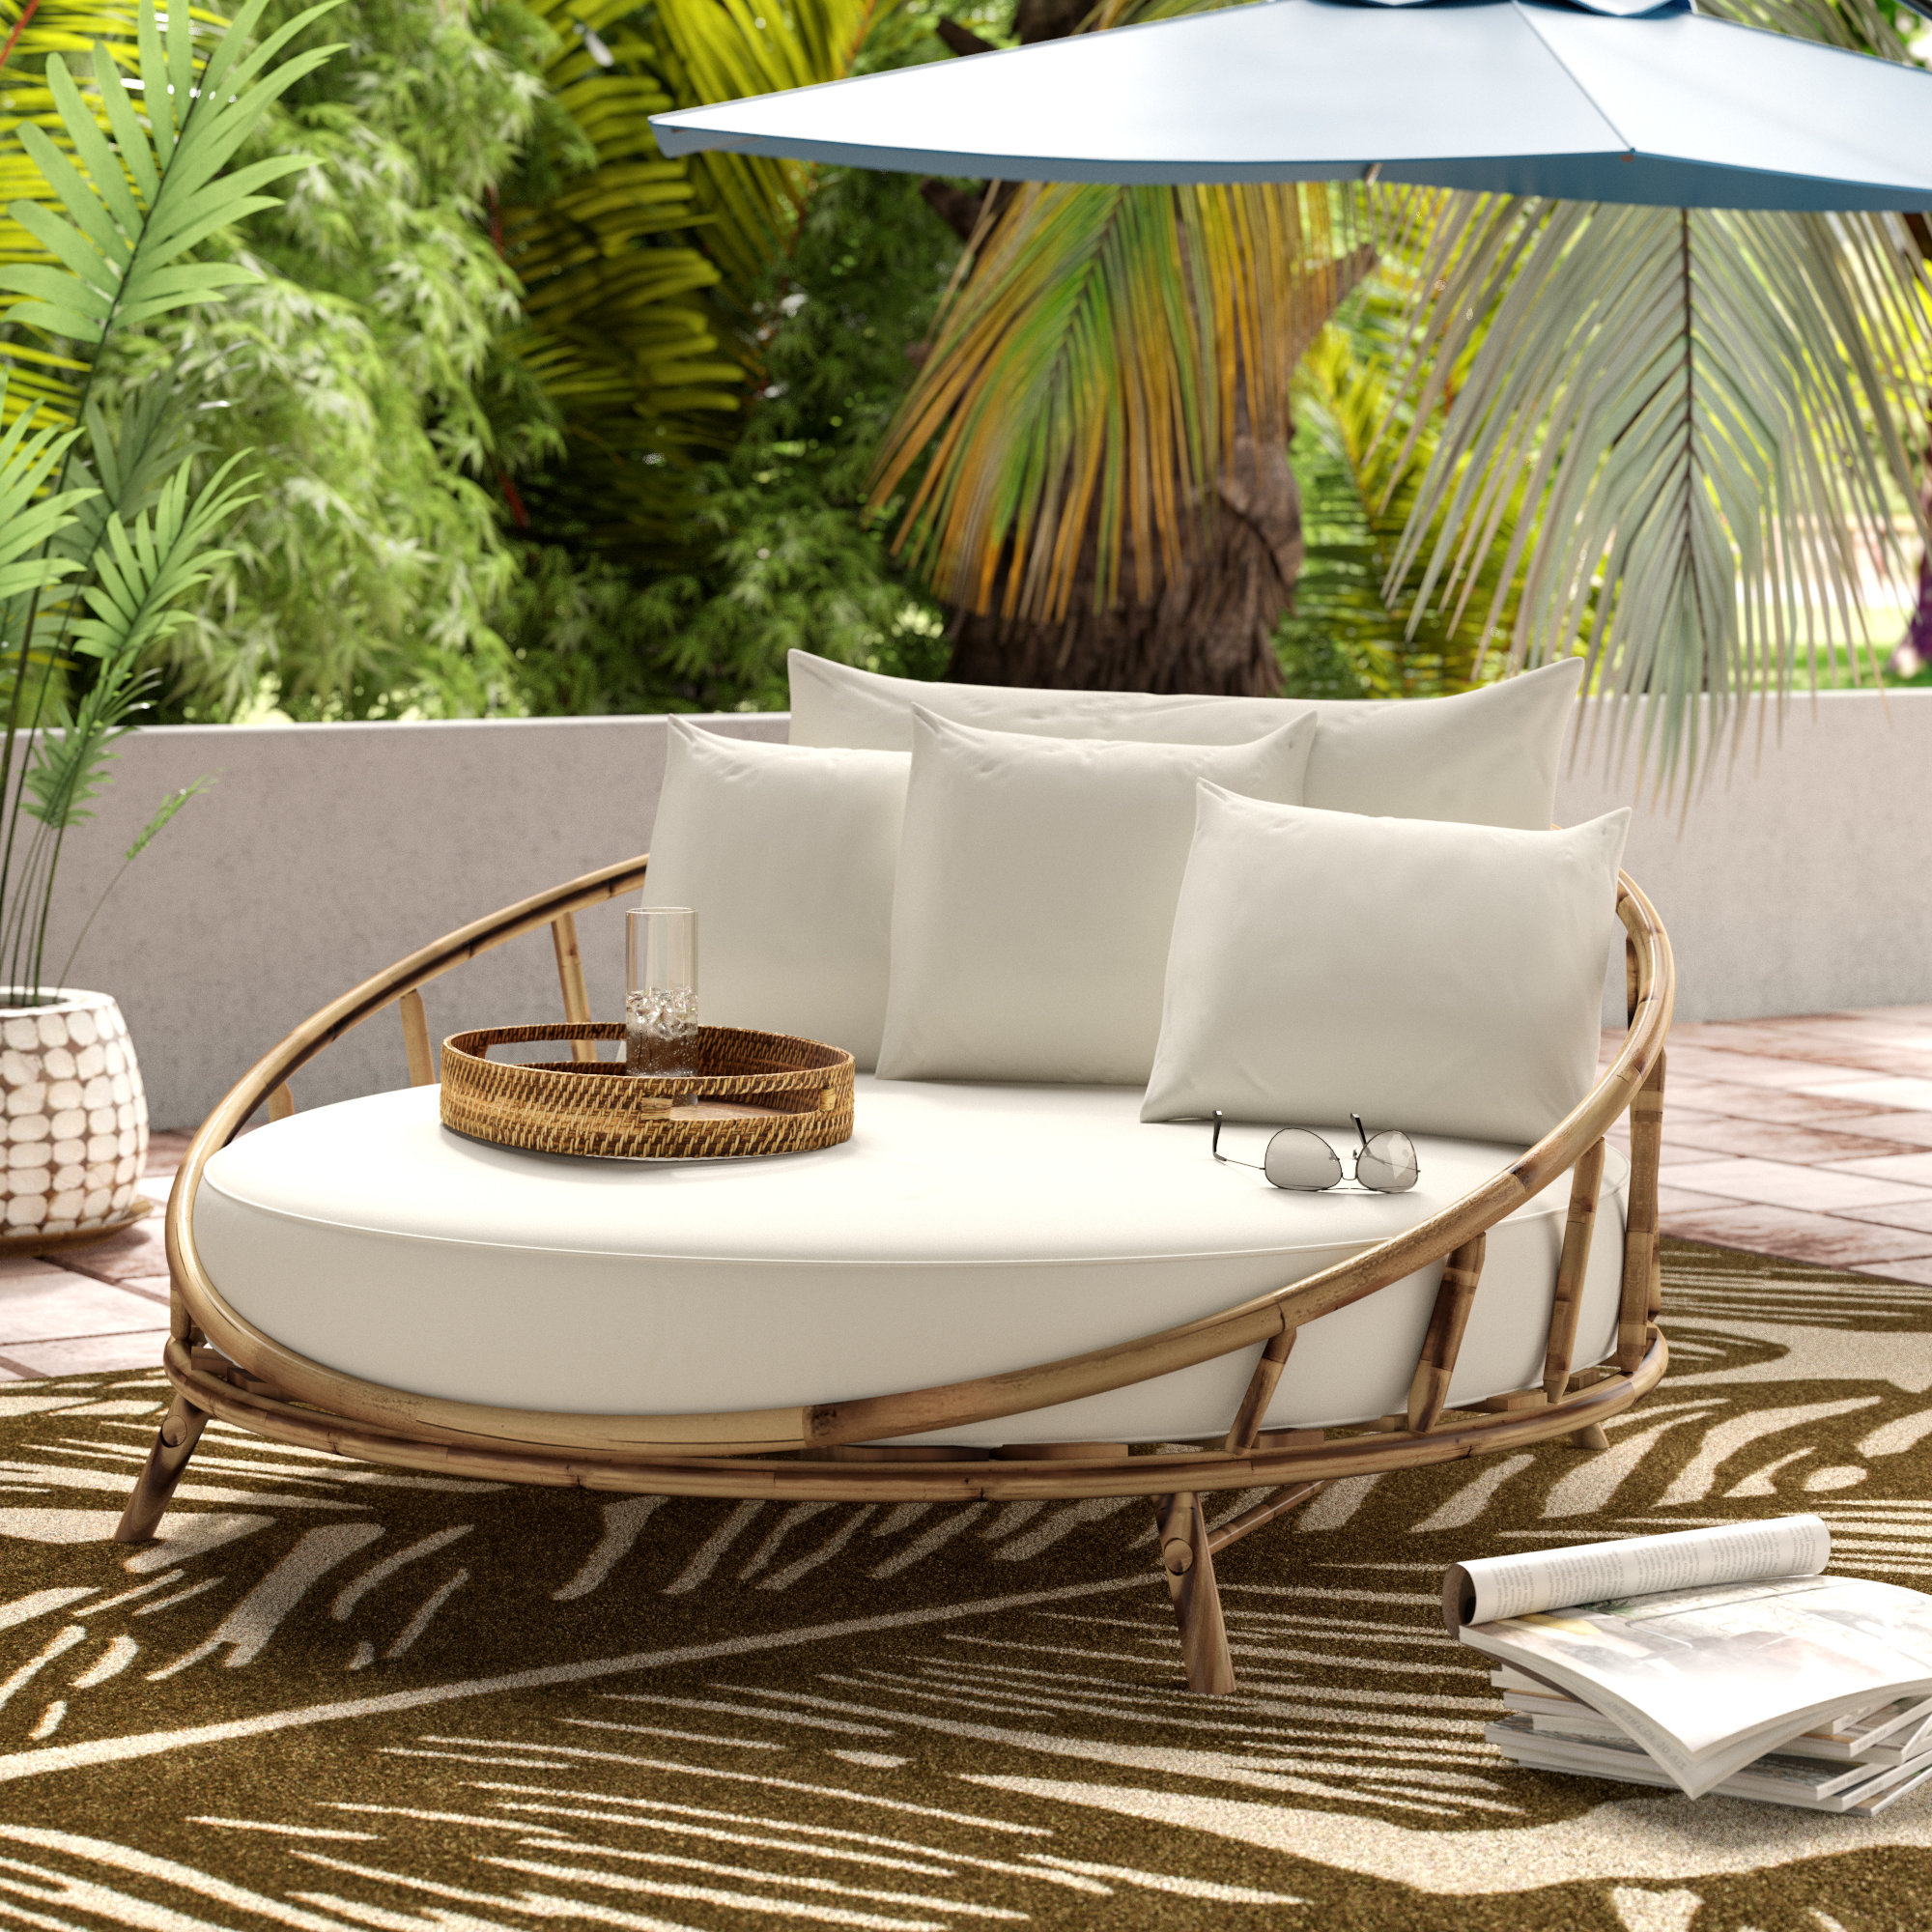 2019 Olu Bamboo Large Round Patio Daybeds With Cushions With Regard To Bayou Breeze Olu Bamboo Large Round Patio Daybed With (View 2 of 20)